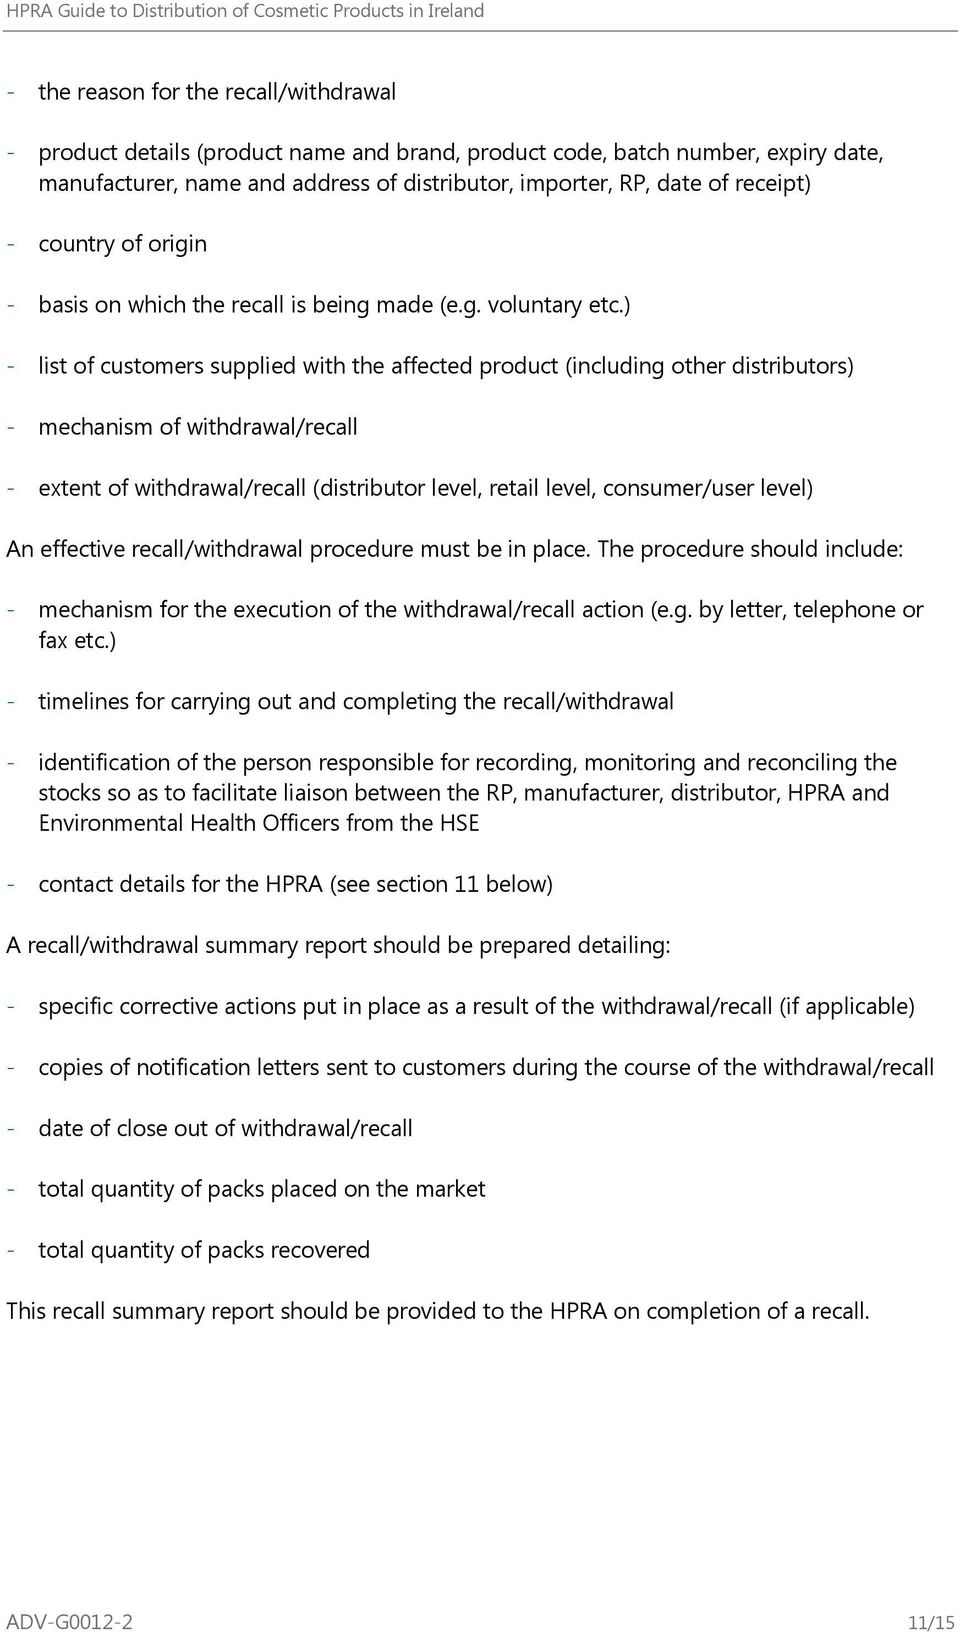 ) - list of customers supplied with the affected product (including other distributors) - mechanism of withdrawal/recall - extent of withdrawal/recall (distributor level, retail level, consumer/user